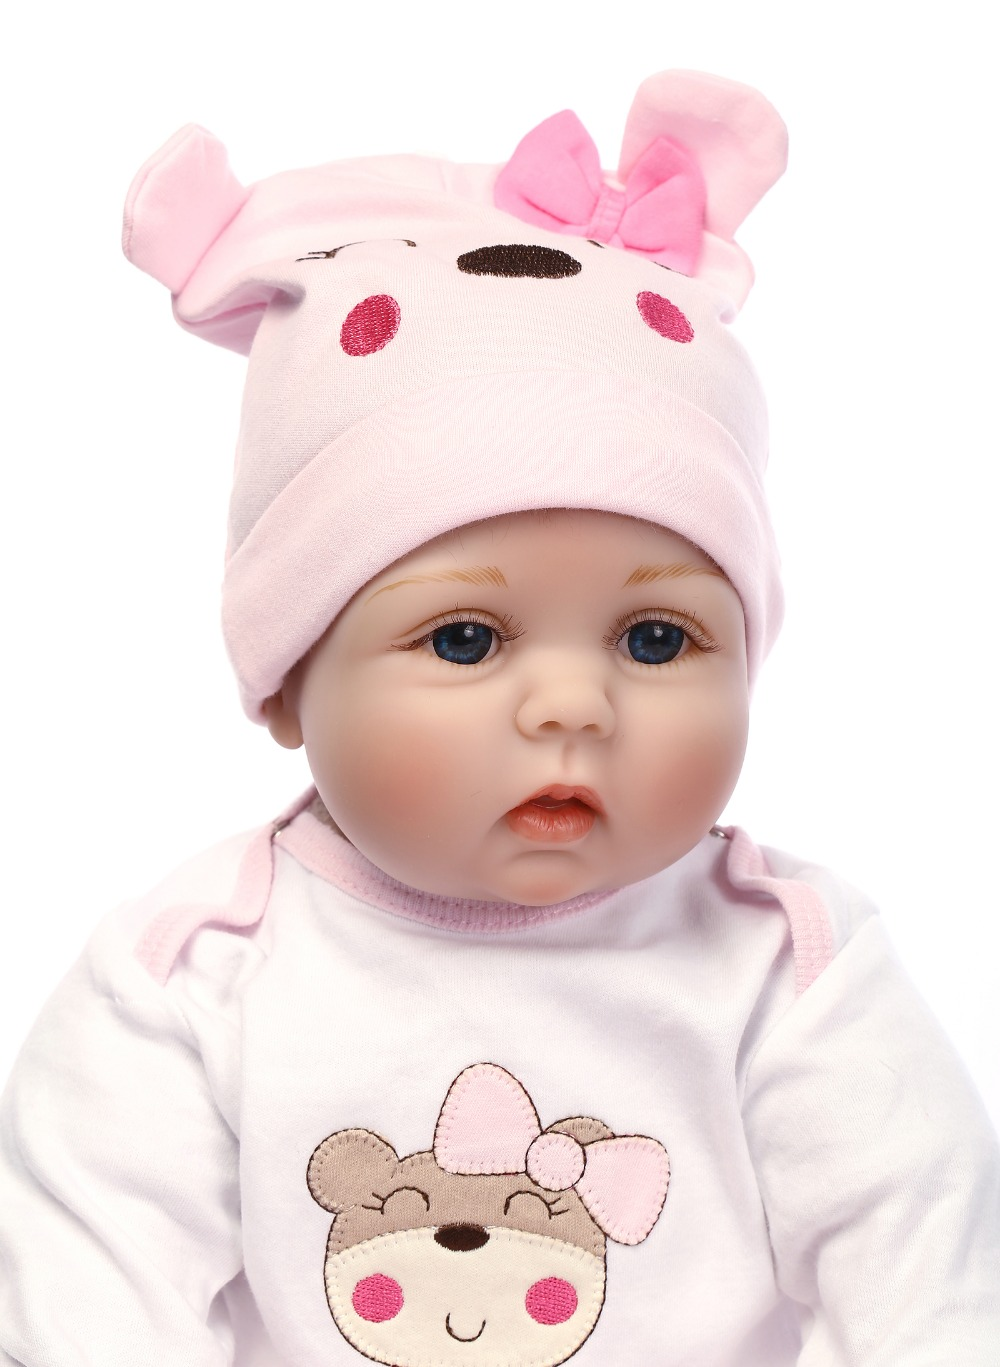 NPKCOLLECTION-40CM-Silicone-Reborn-Boneca-Realista-Fashion-Baby-Dolls-Kids-Birthday-Gift-Bebes-Reborn-Dolls-For (2)